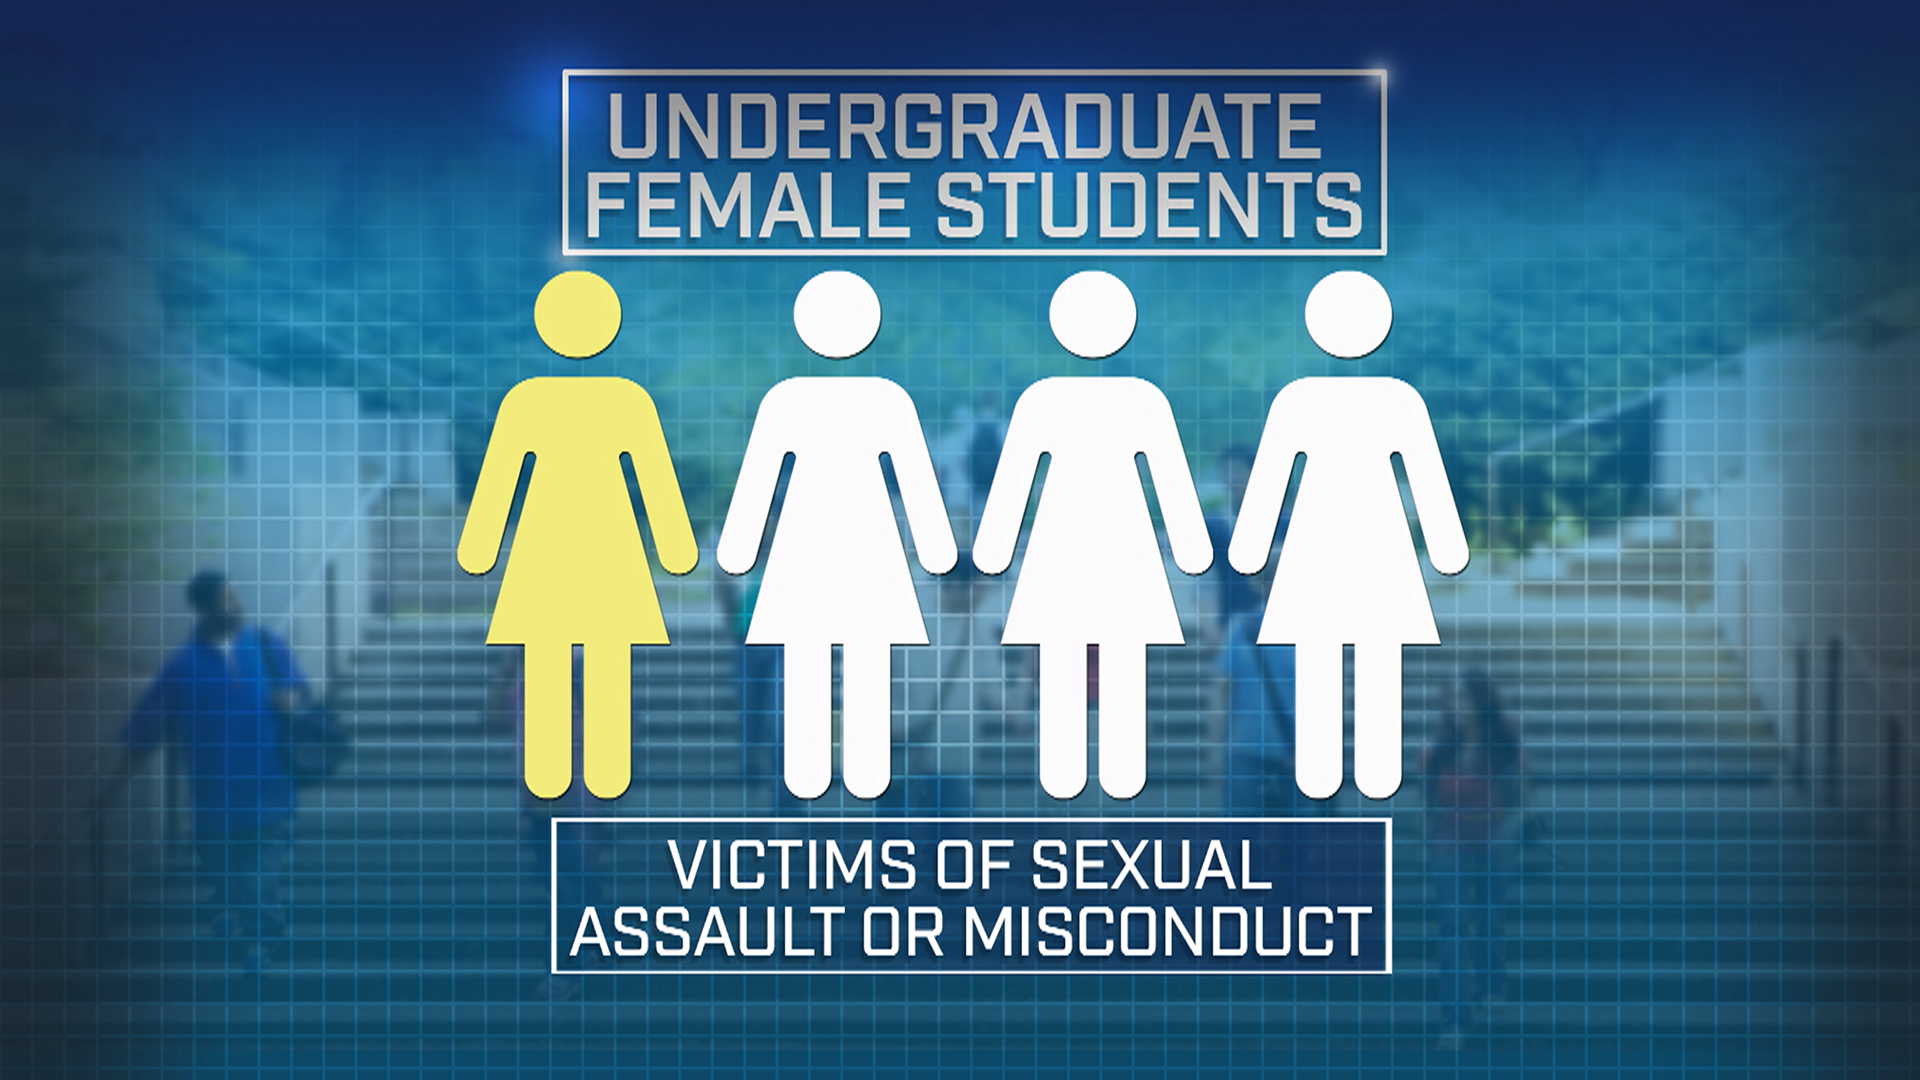 Alarming Numbers of Sex Assaults at Top Universities